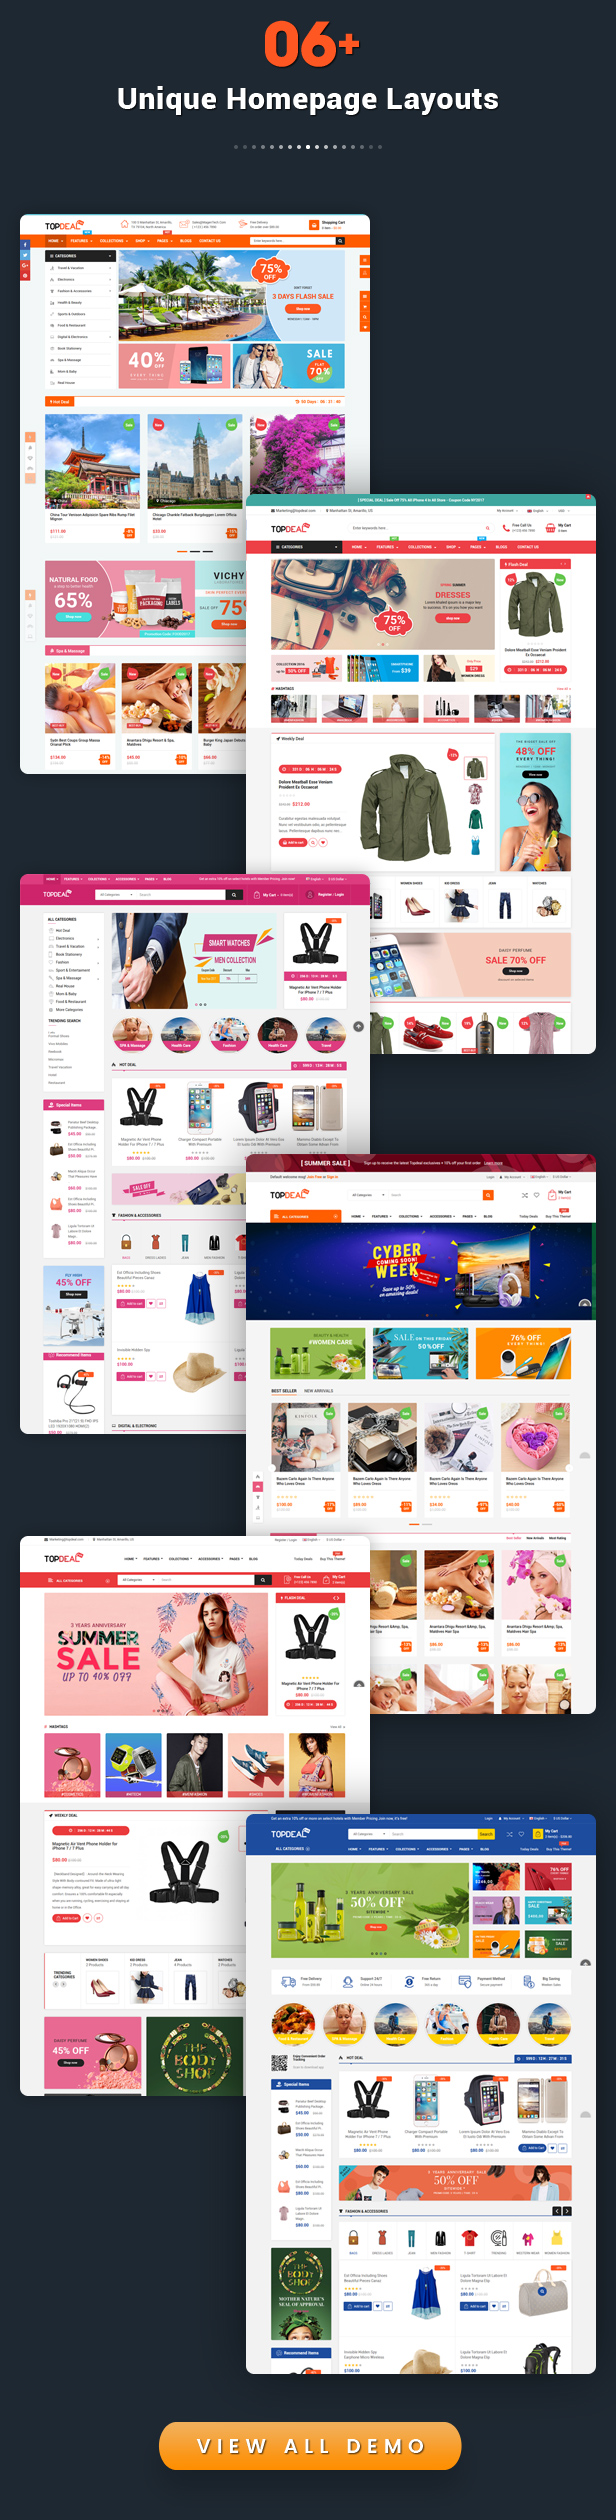 TopDeal - Responsive MultiPurpose HTML 5 Template (Mobile Layouts Included)